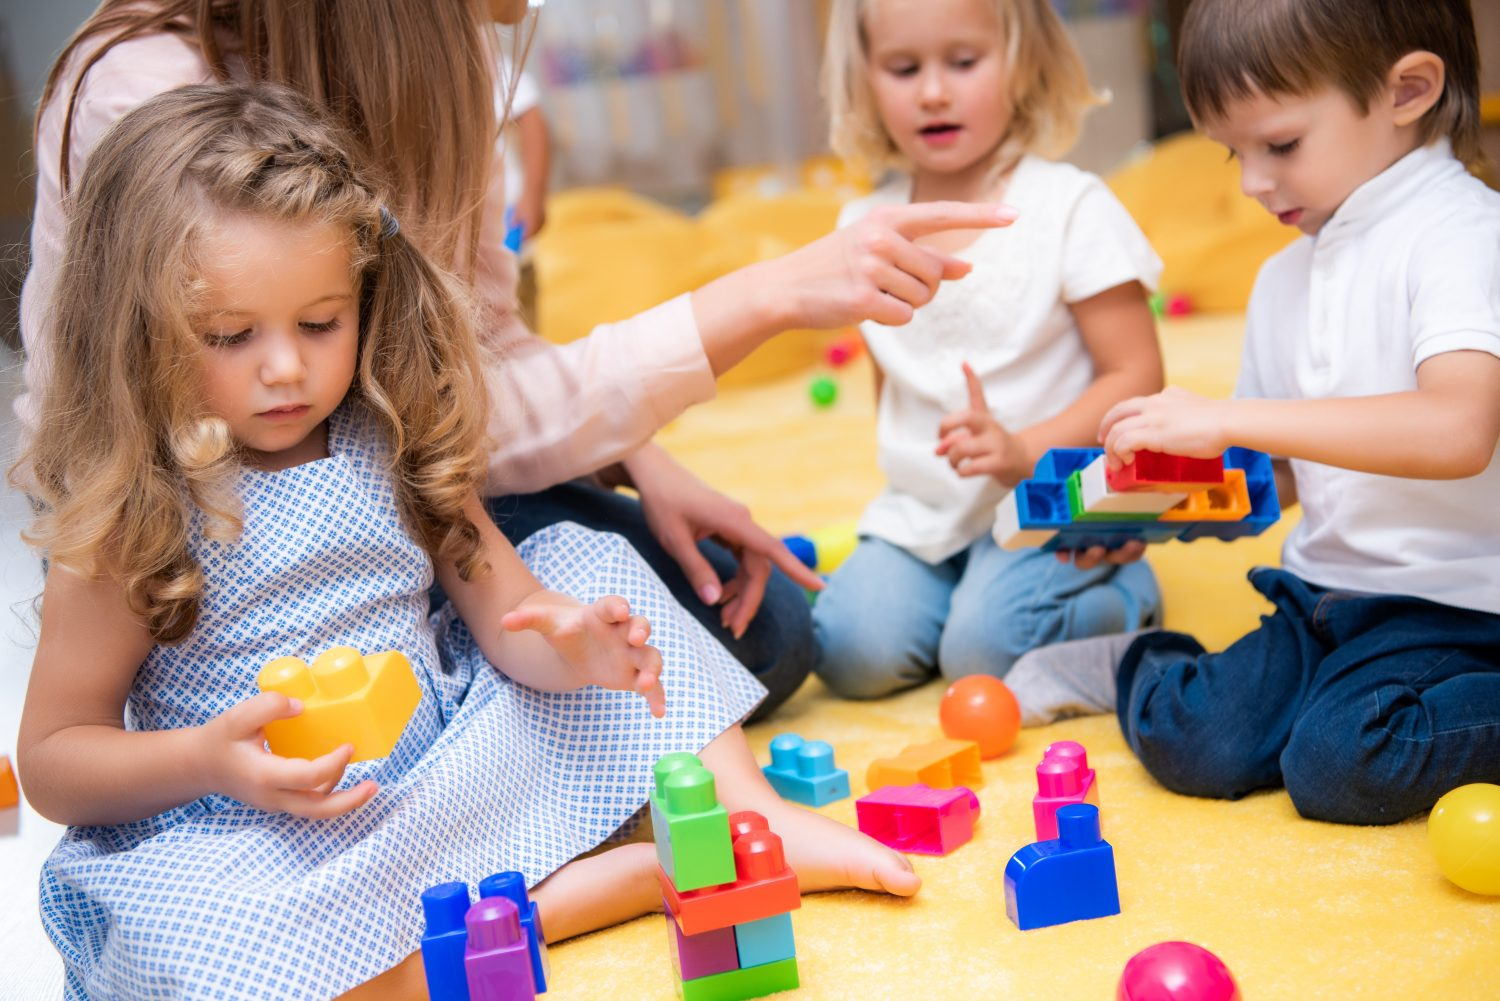 Improving Your Child's Social Skills - 7 Ways Parents Can Help